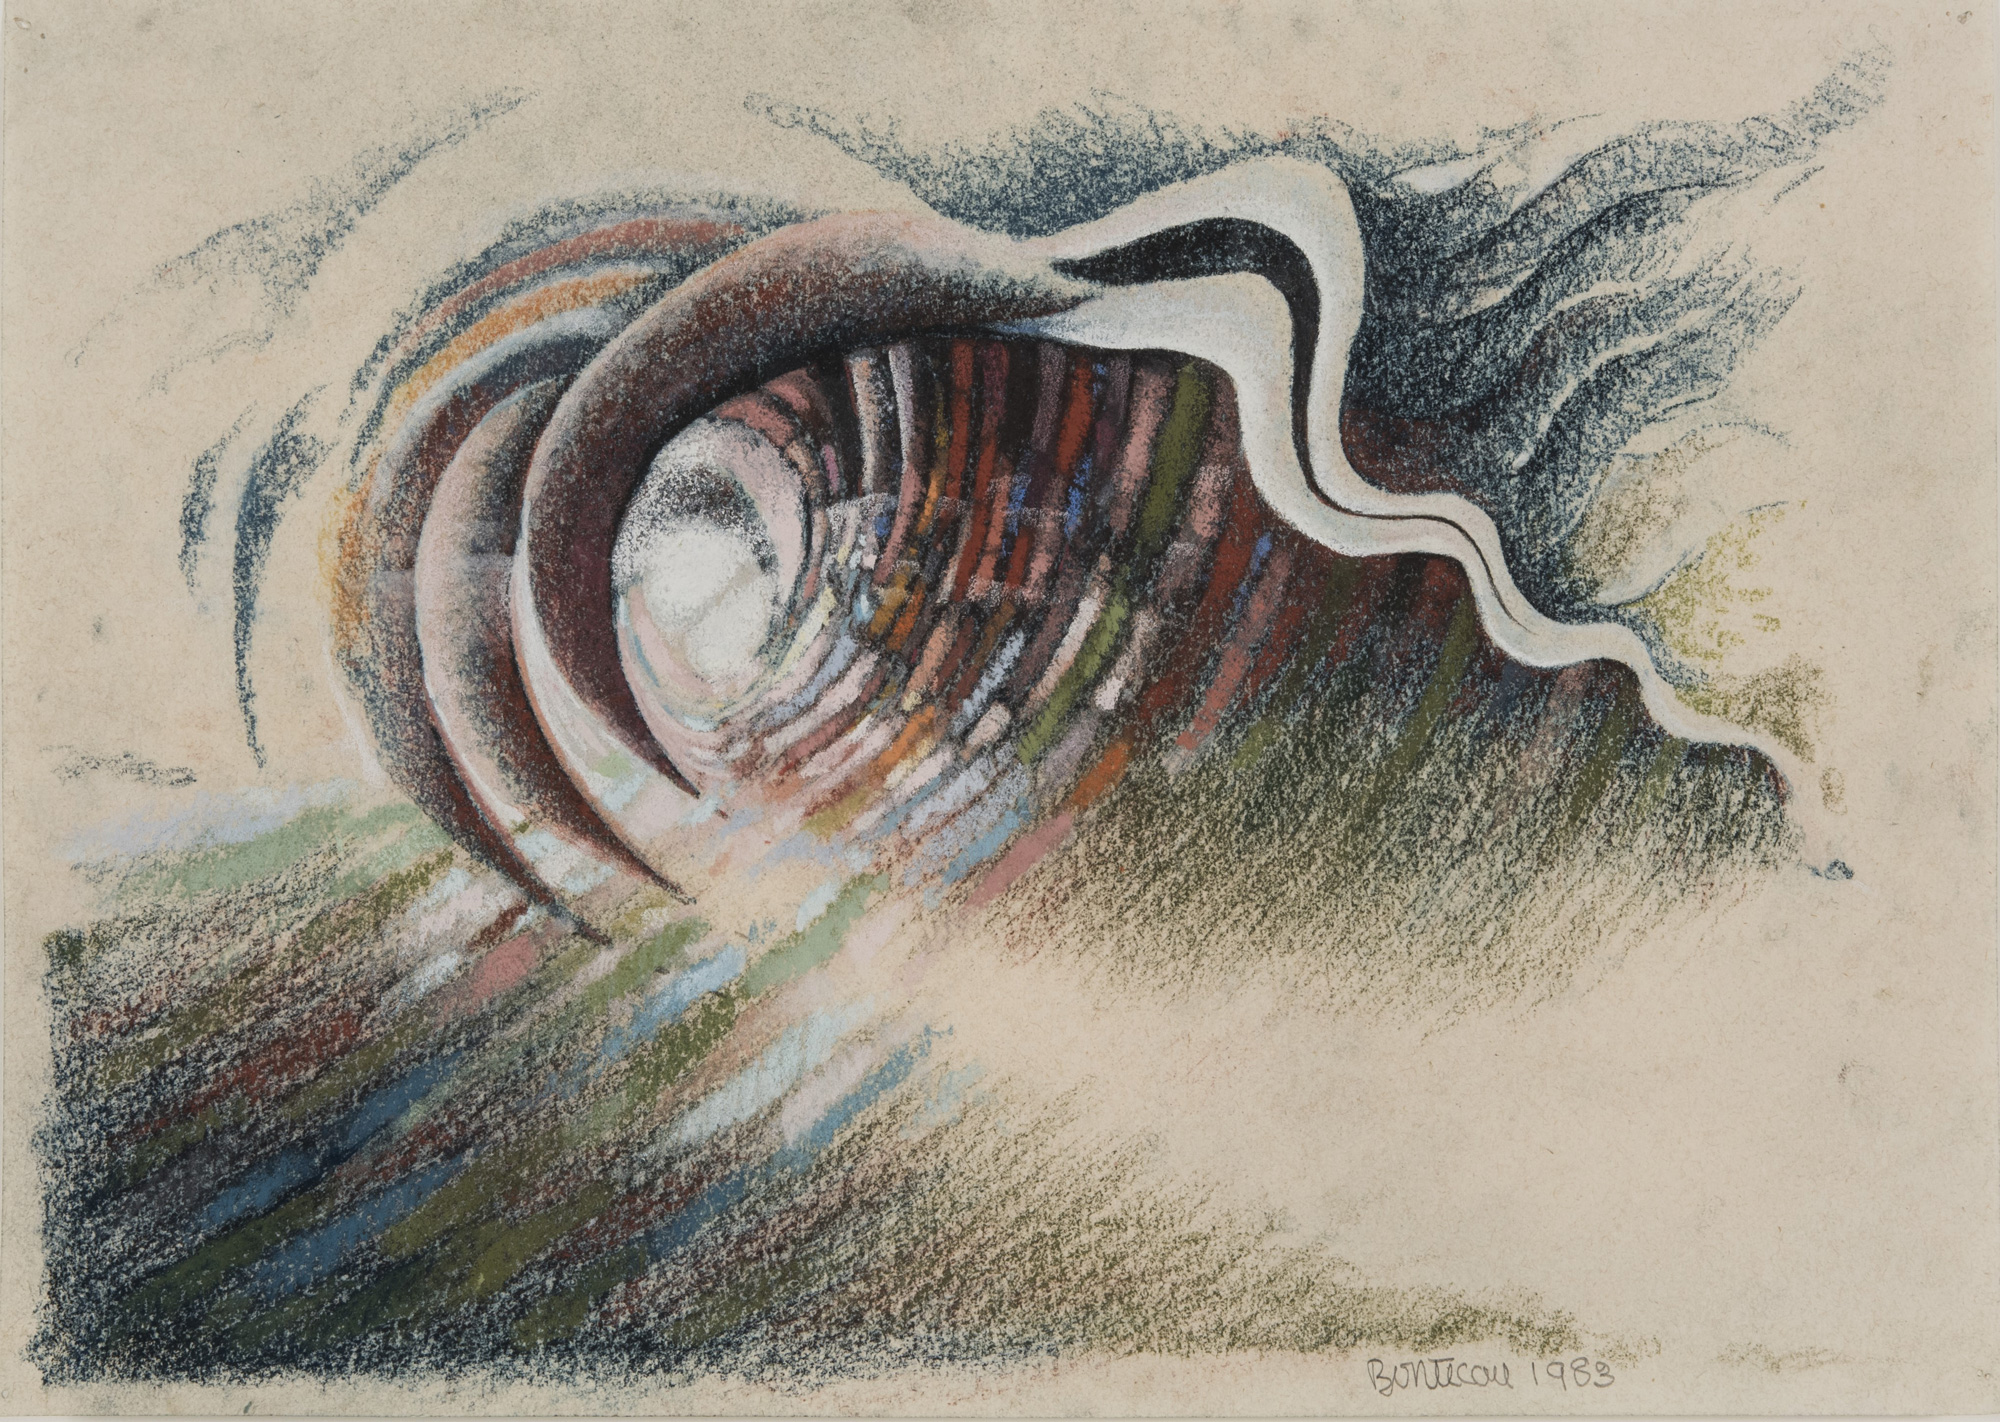 Lee Bontecou, Untitled #21, 1983.